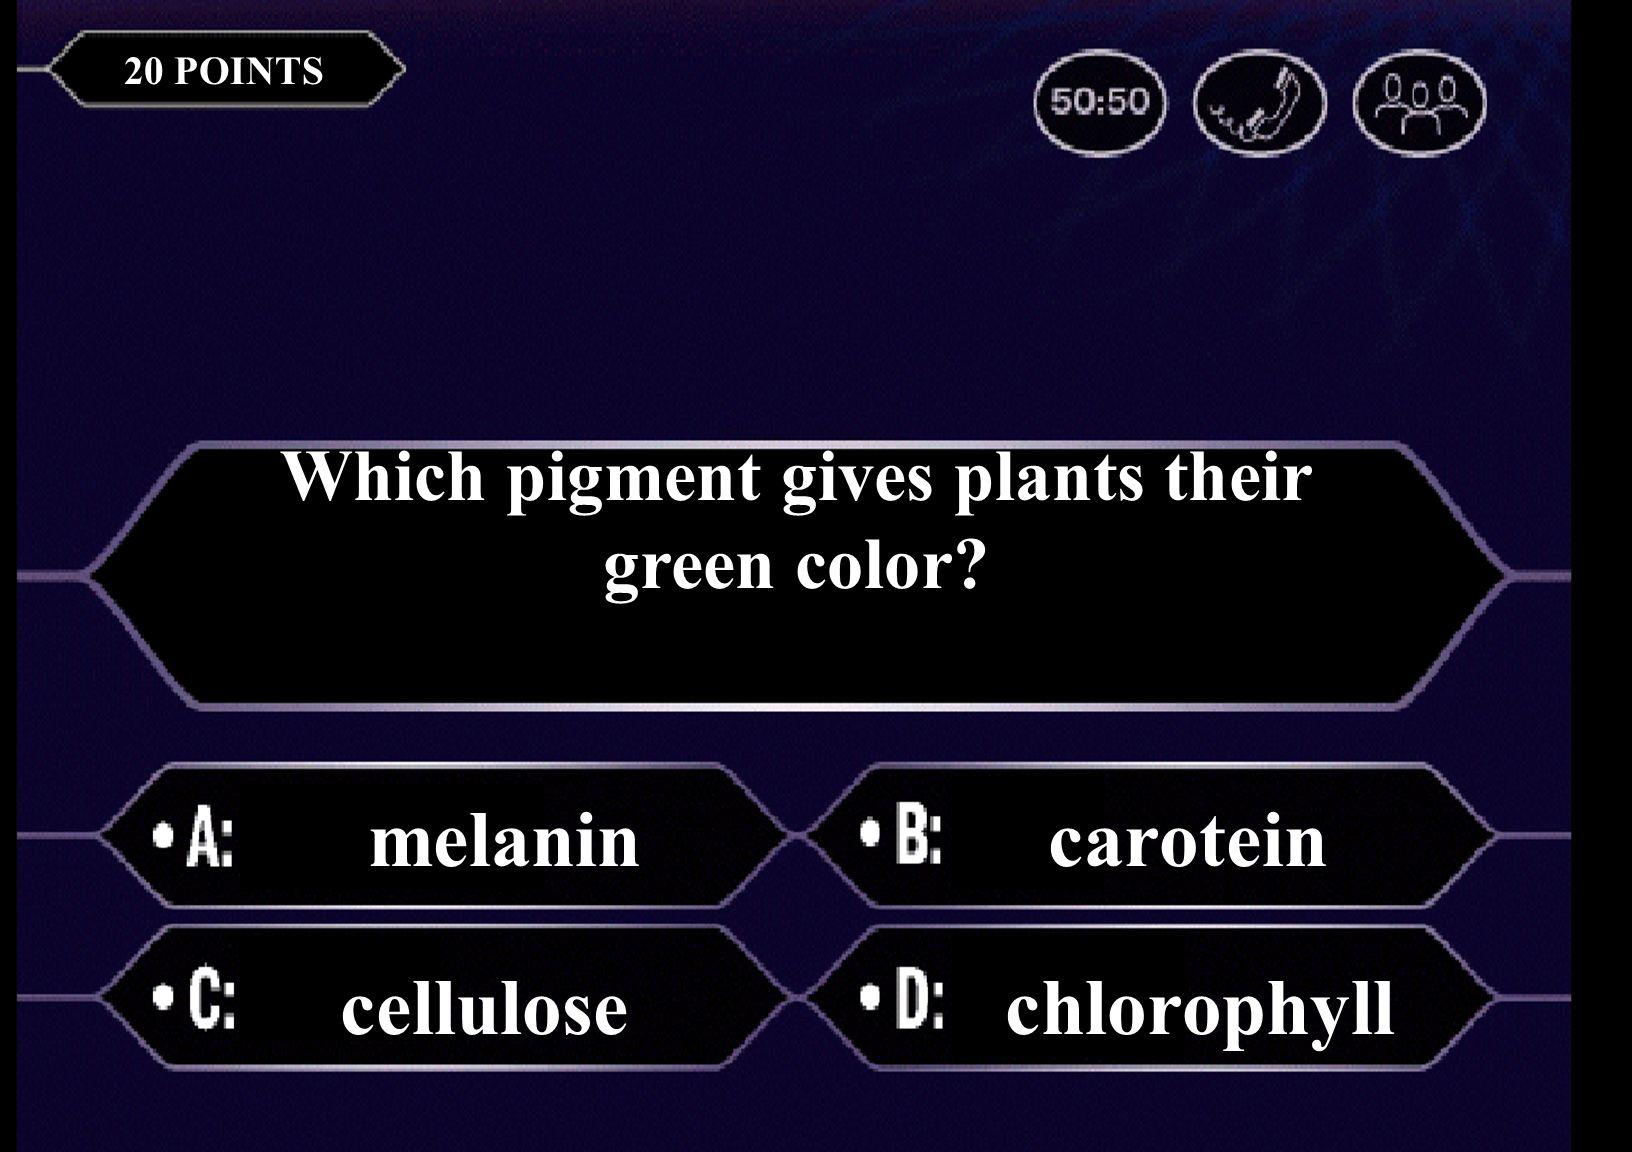 The basic unit of life is a(n) cell airtissue 20 POINTS Which pigment gives plants their green color.